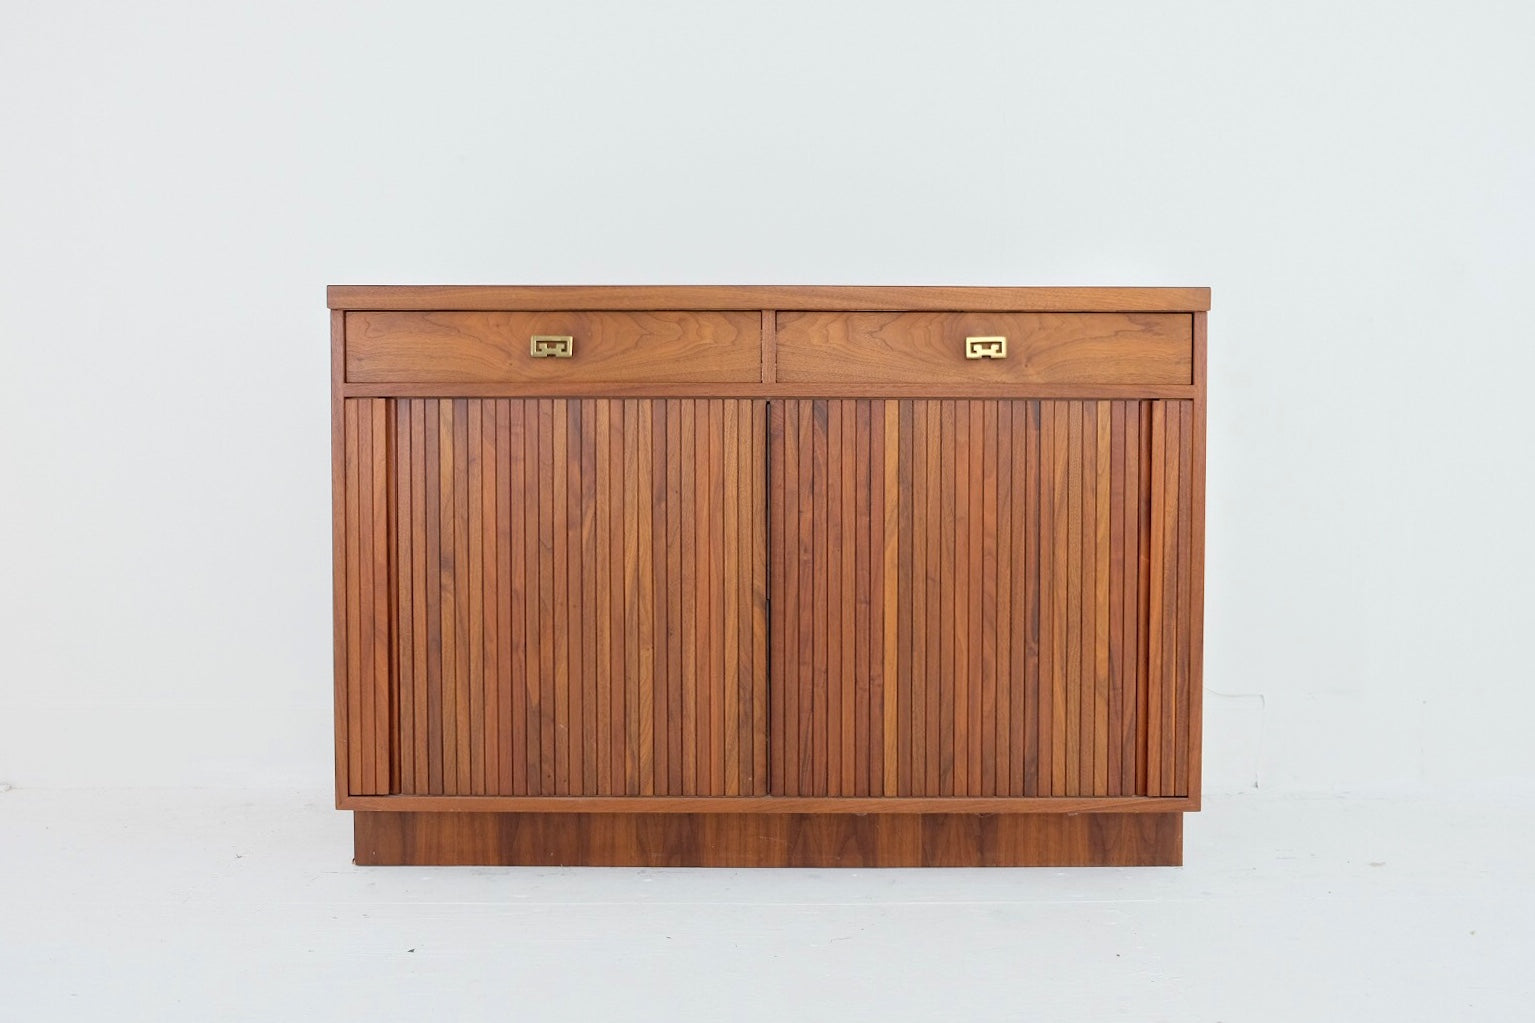 Solid Walnut Mid Century Modern Handmade Unique Storage Unit Tambour Doors Fleece Lined Drawers Super Smooth Hardware Brass Handles Laminate Top